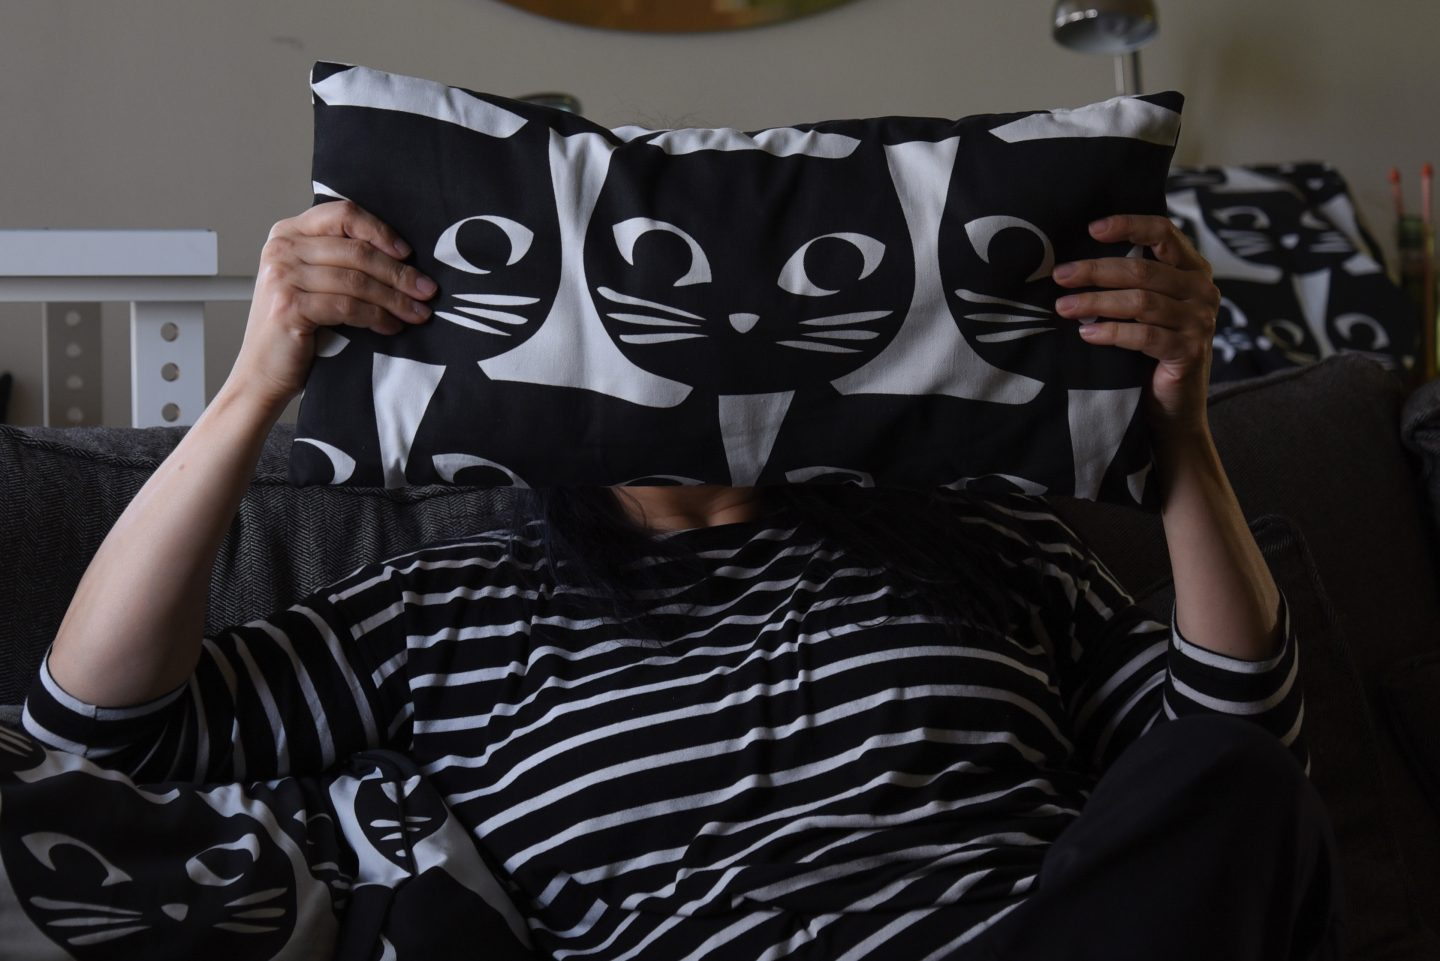 Image of a woman wearing black and white striped shirt holding a black and white cat pillow in front of her face